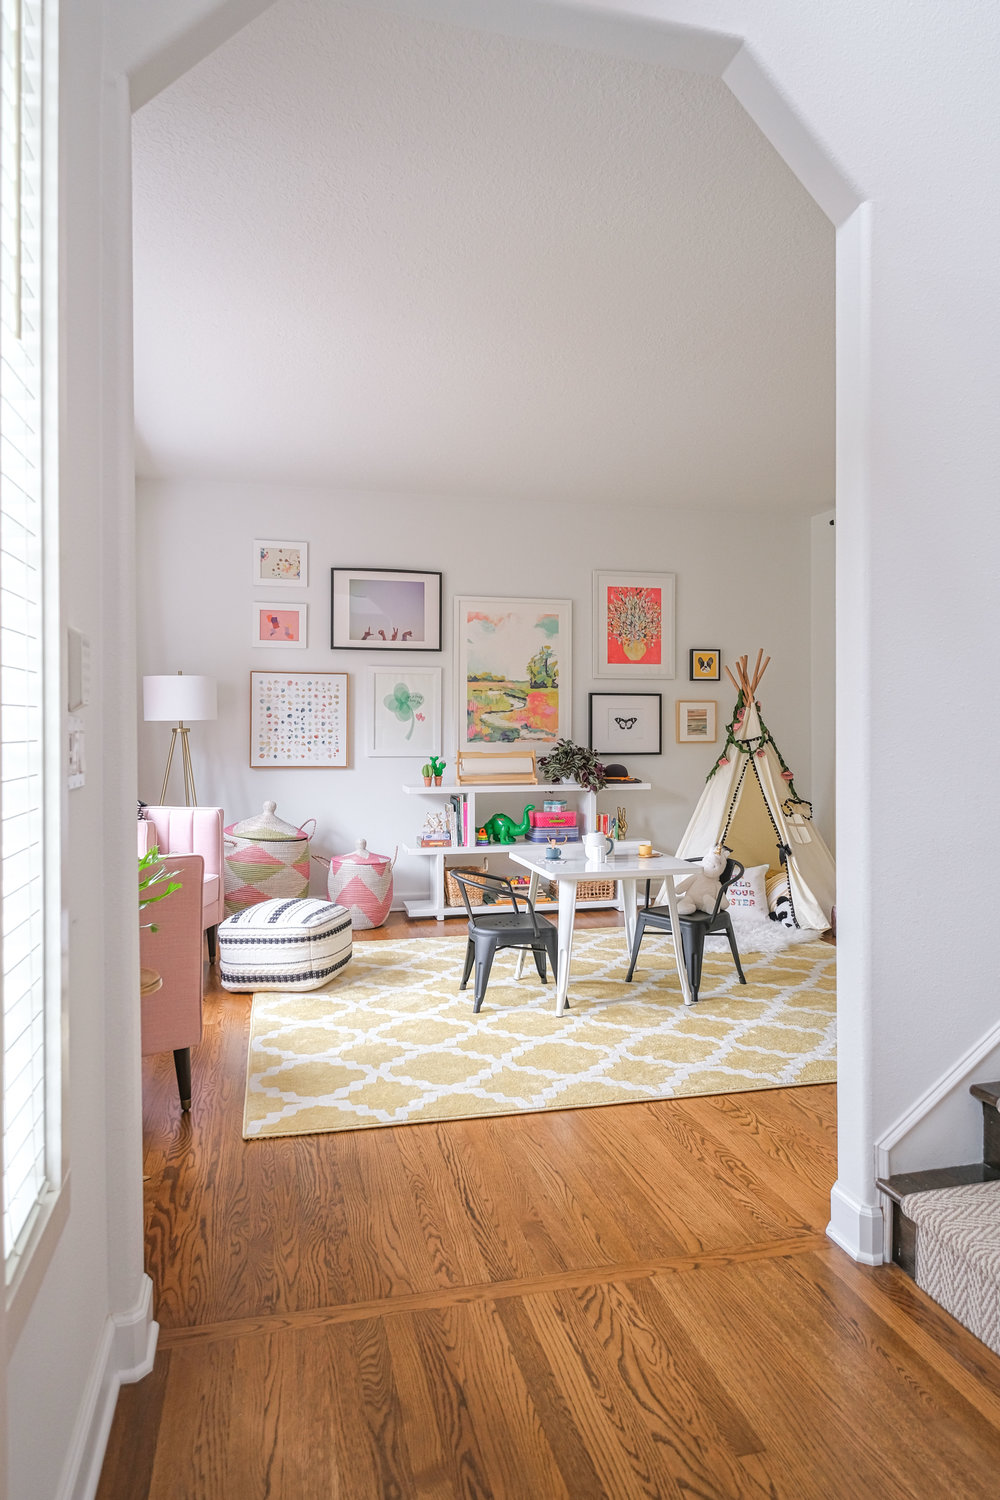 One Room Challenge 2018 | This colorful playroom is functional and stylish! With the gallery wall, open modern bookshelf, and kids play table, it's ready to grow with the kids as they get older.